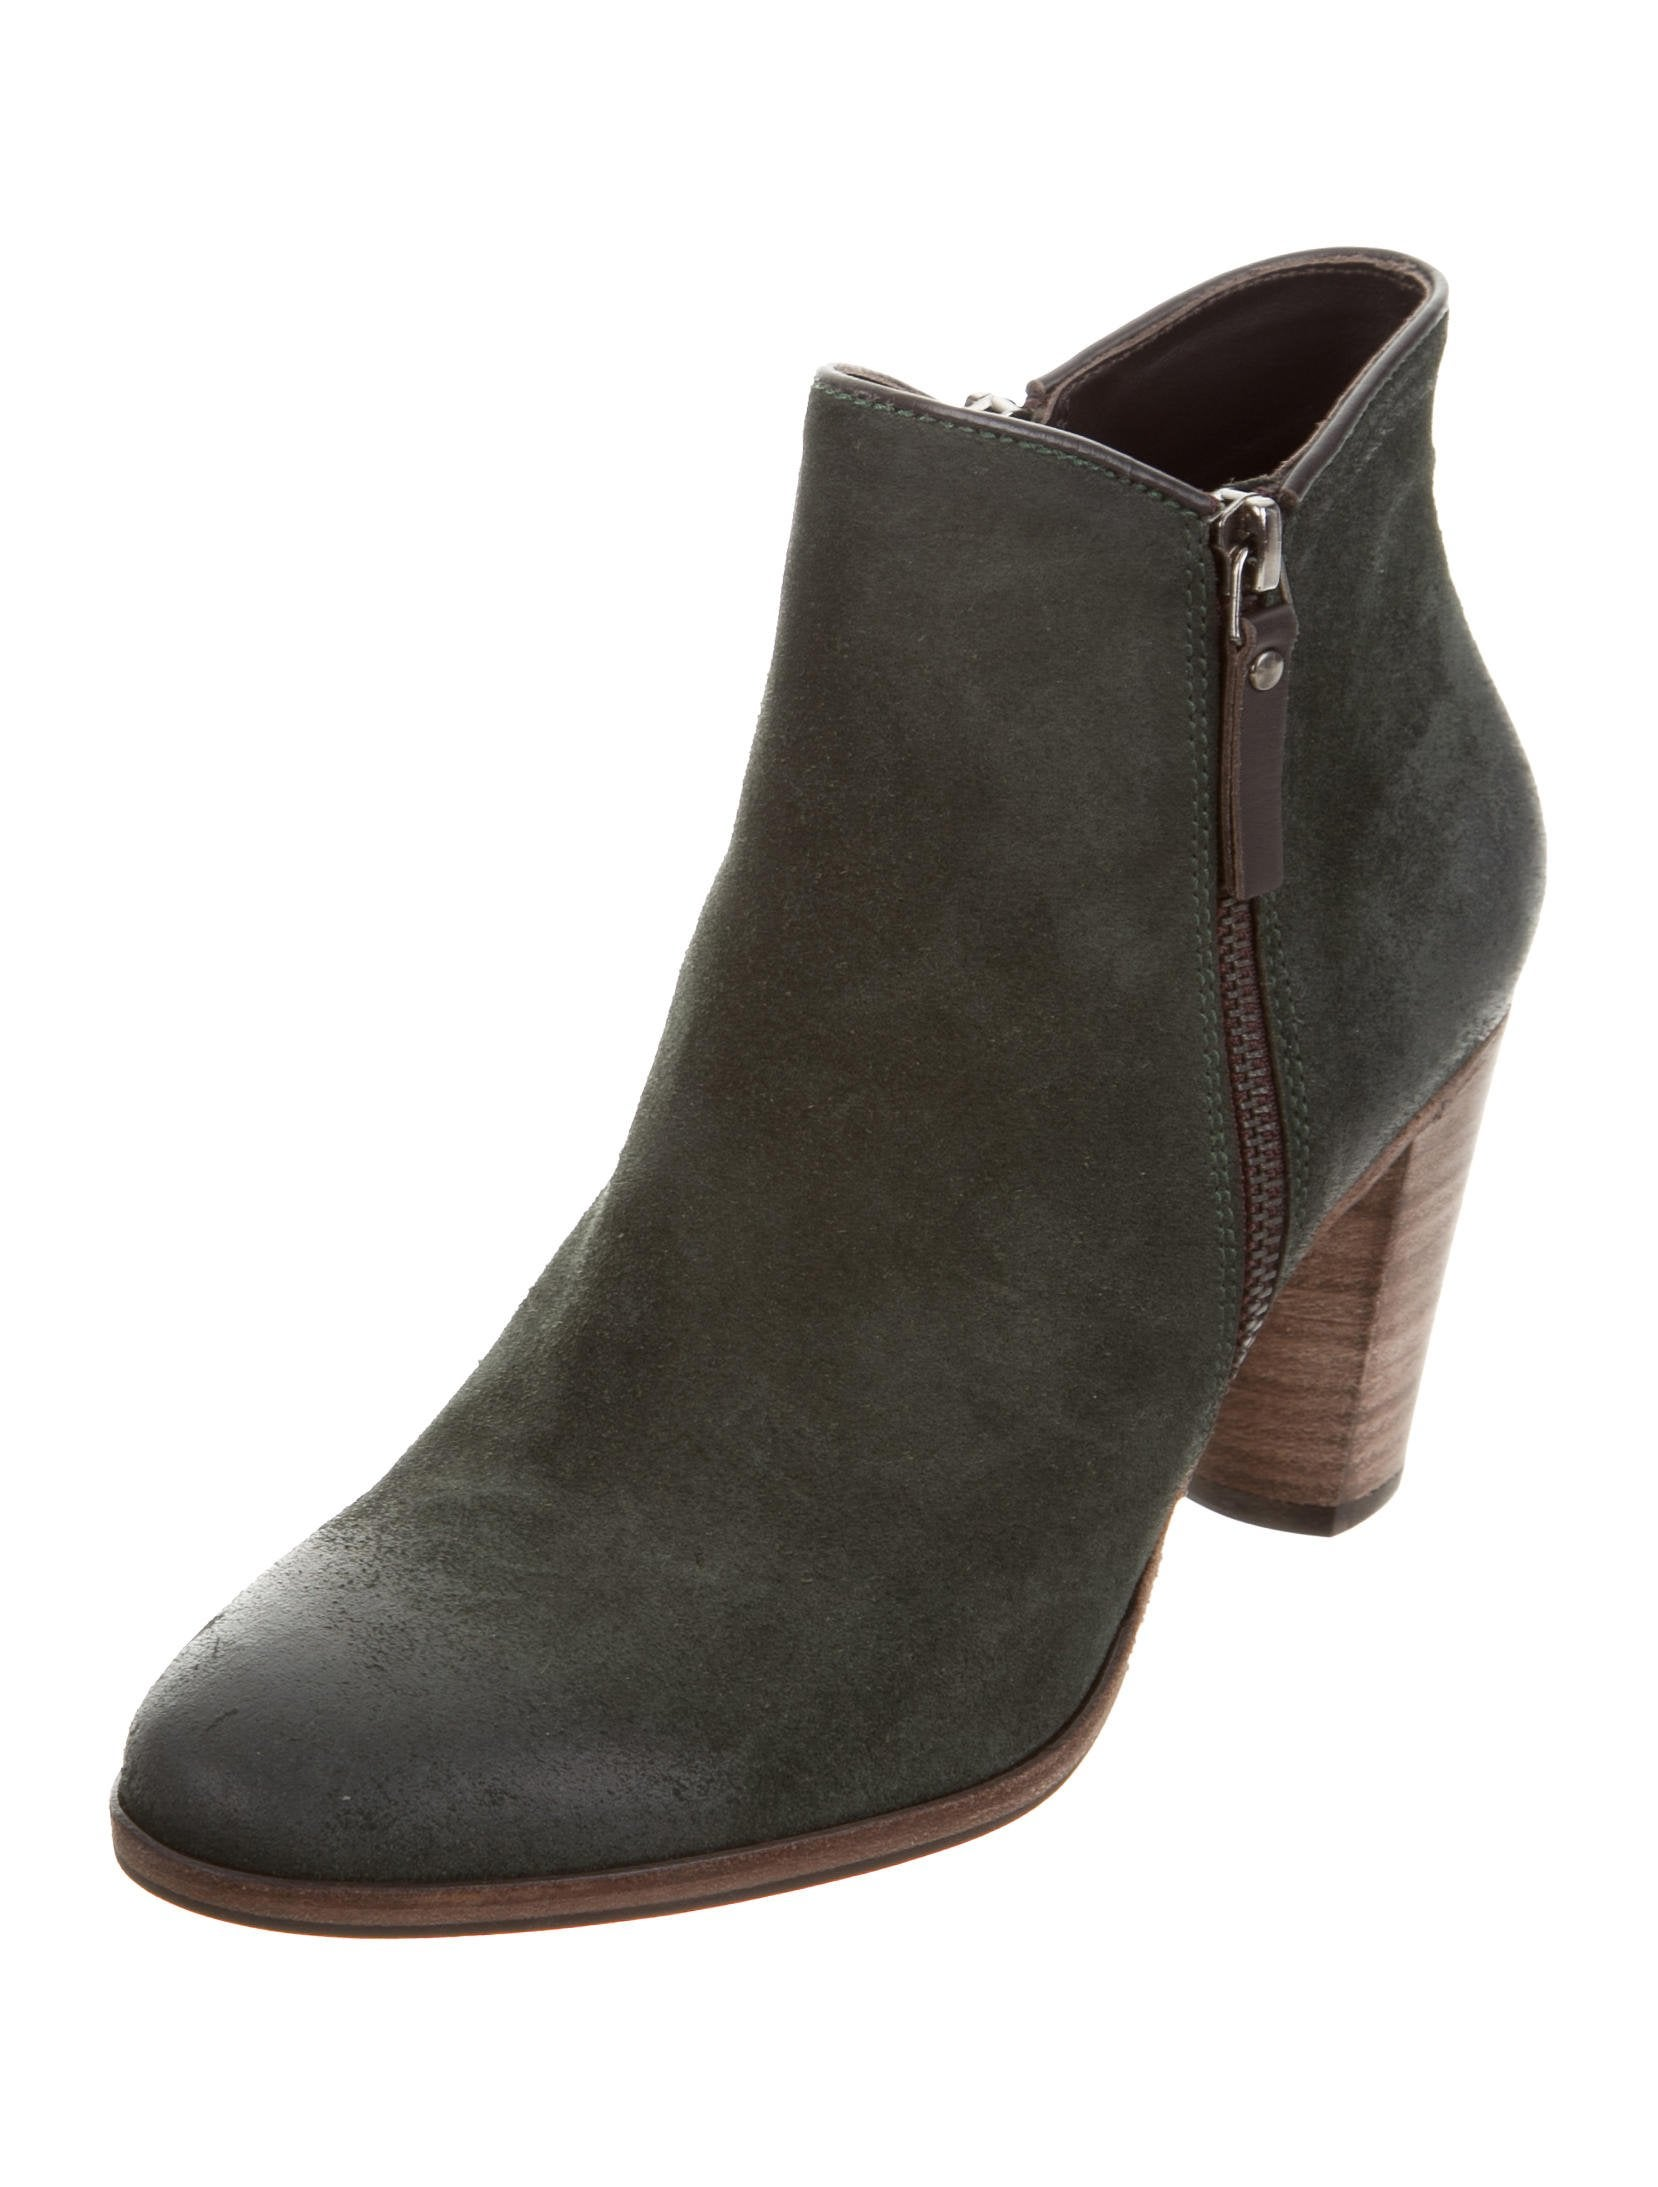 n.d.c. Snyder Round-Toe Booties w/ Tags for sale top quality RwqYD